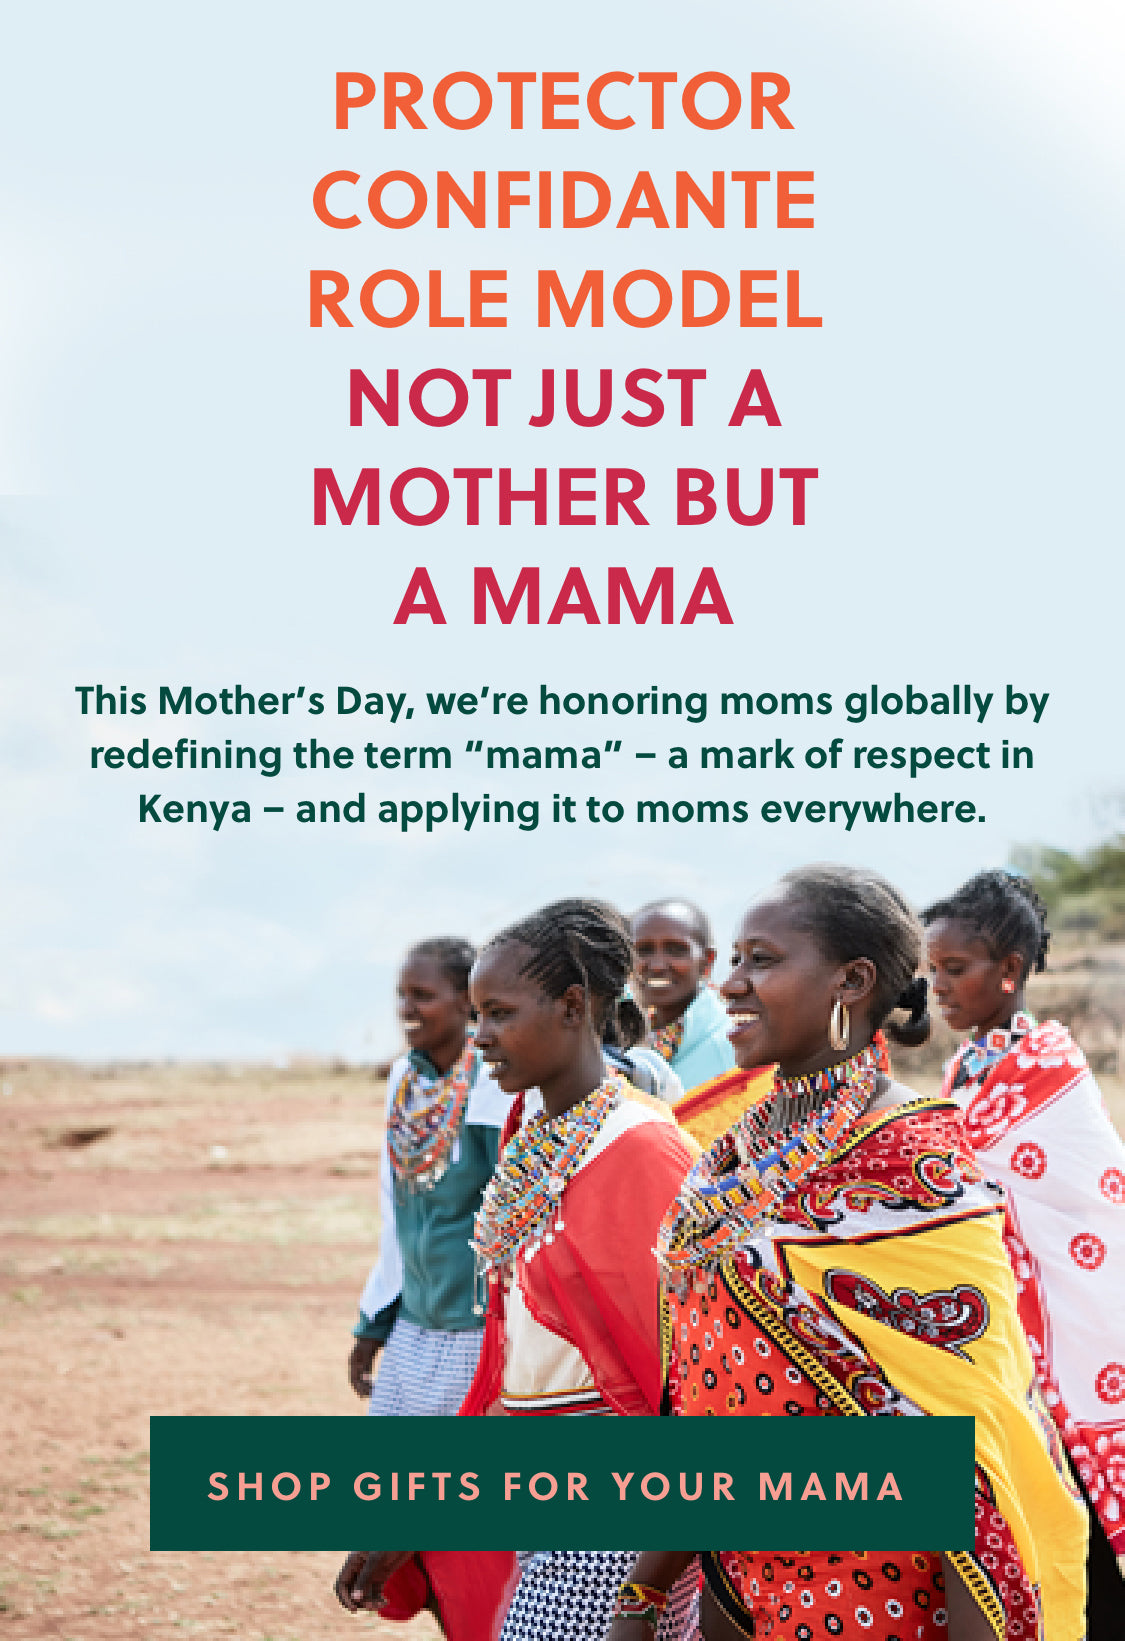 Not just a mother, but a mama: